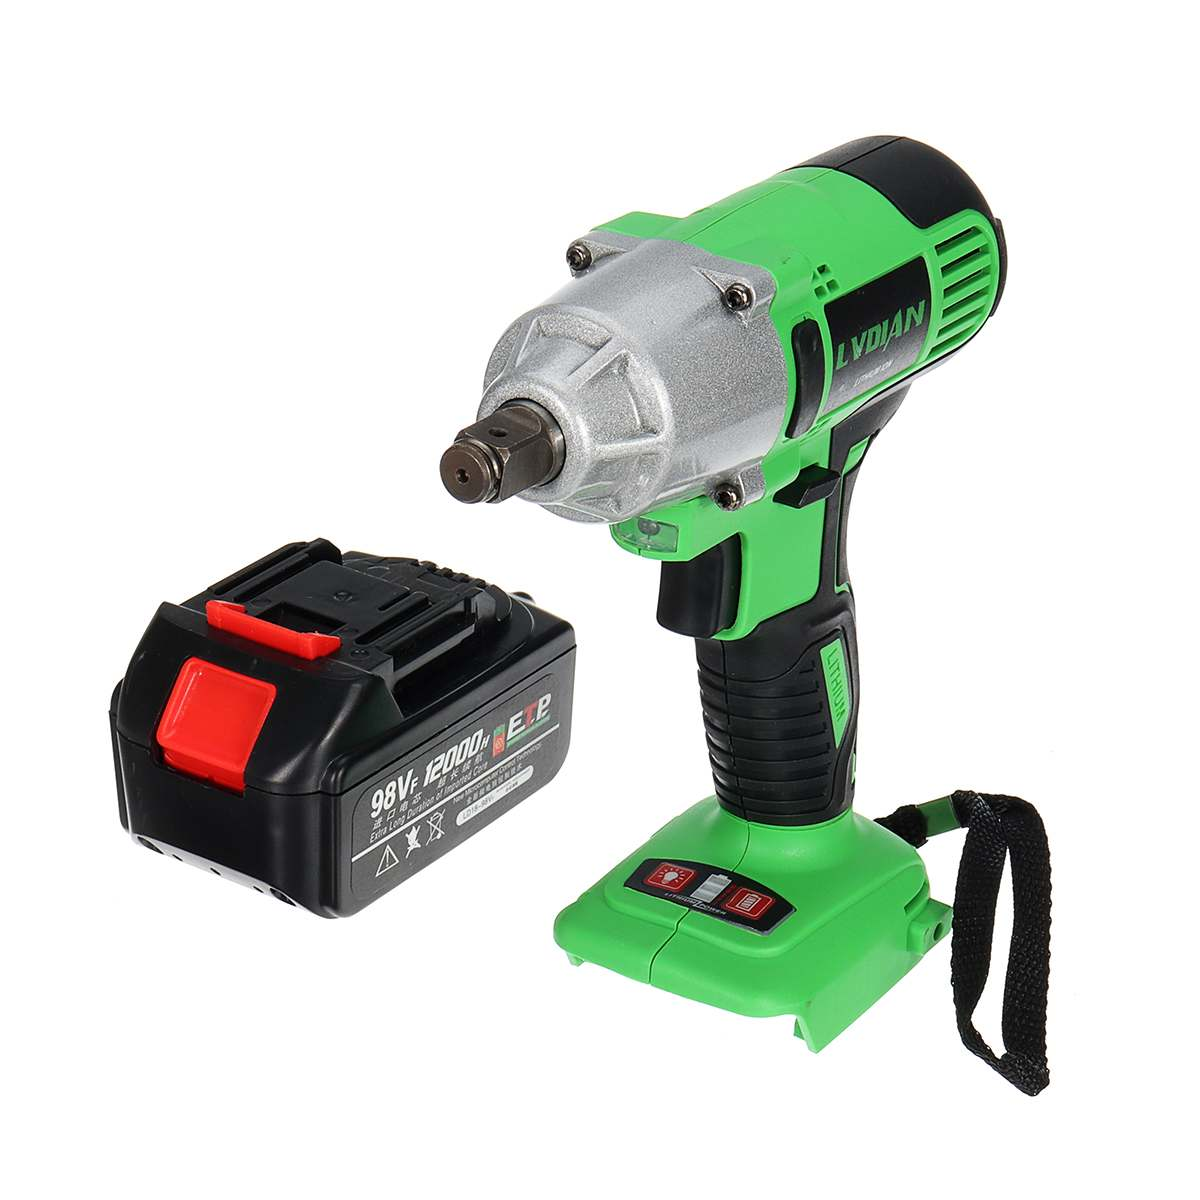 Tools : DRILLPRO Electric Wrench 98VF 1 2inch Brushless Cordless Electric Impact Wrench Drill with 12000mah Battery LED lights Power Tools